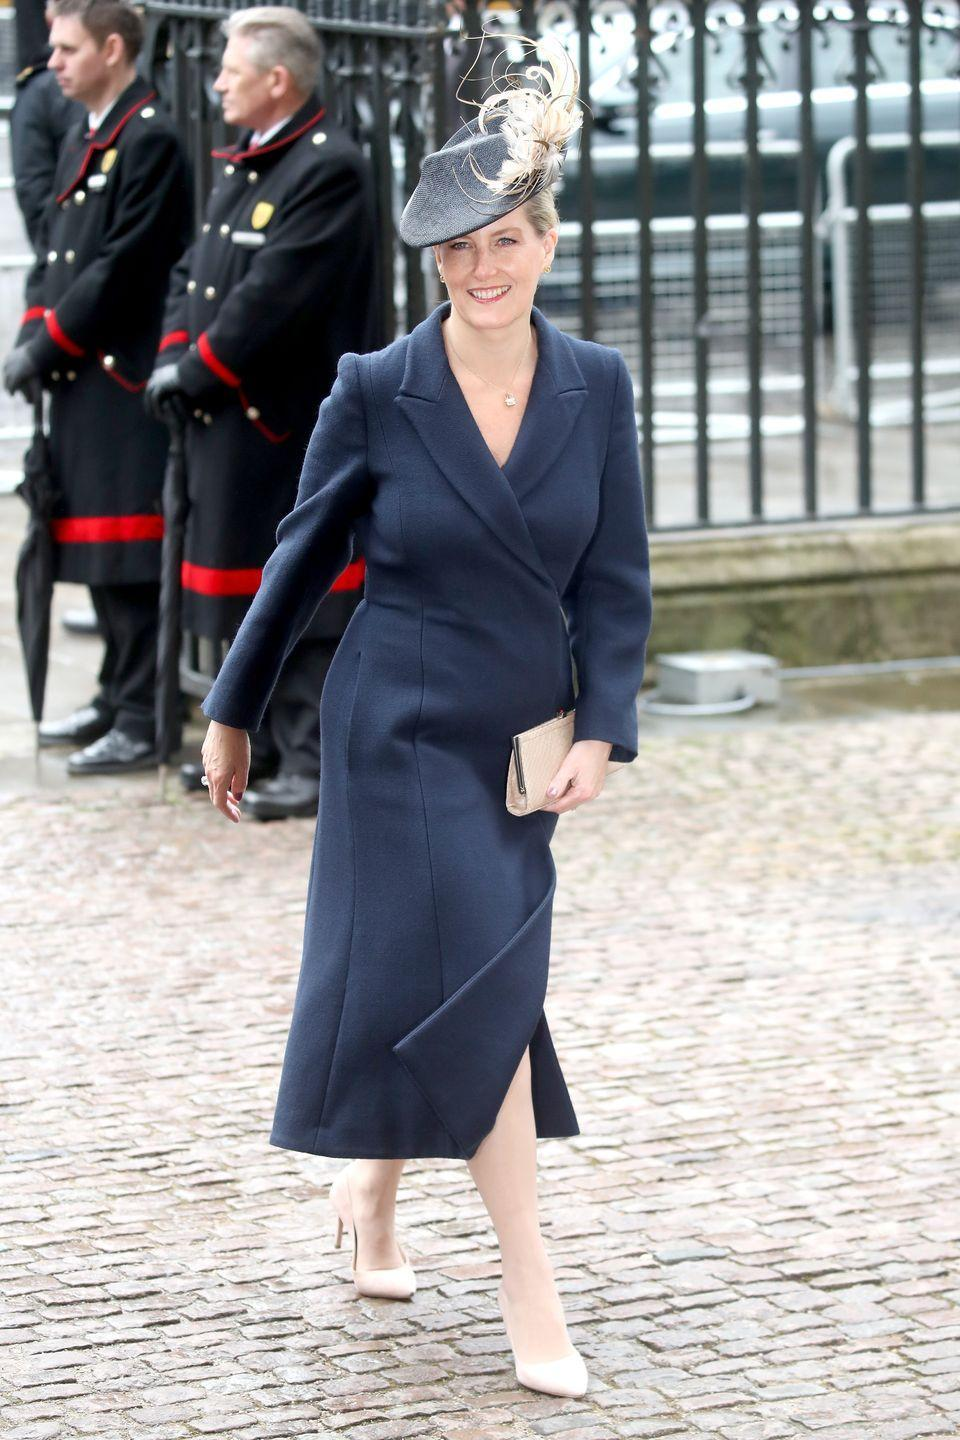 """<p>For this year's Commonwealth Day Service, the entire royal family was quite <a href=""""https://www.townandcountrymag.com/society/tradition/g19405600/royal-family-commonwealth-day-celebration/?slide=2"""" rel=""""nofollow noopener"""" target=""""_blank"""" data-ylk=""""slk:color-coordinated, all wearing blue and white"""" class=""""link rapid-noclick-resp"""">color-coordinated, all wearing blue and white</a> (aside from the Queen, that is). Here's how Sophie, Countess of Wessex styled her navy ensemble. </p>"""